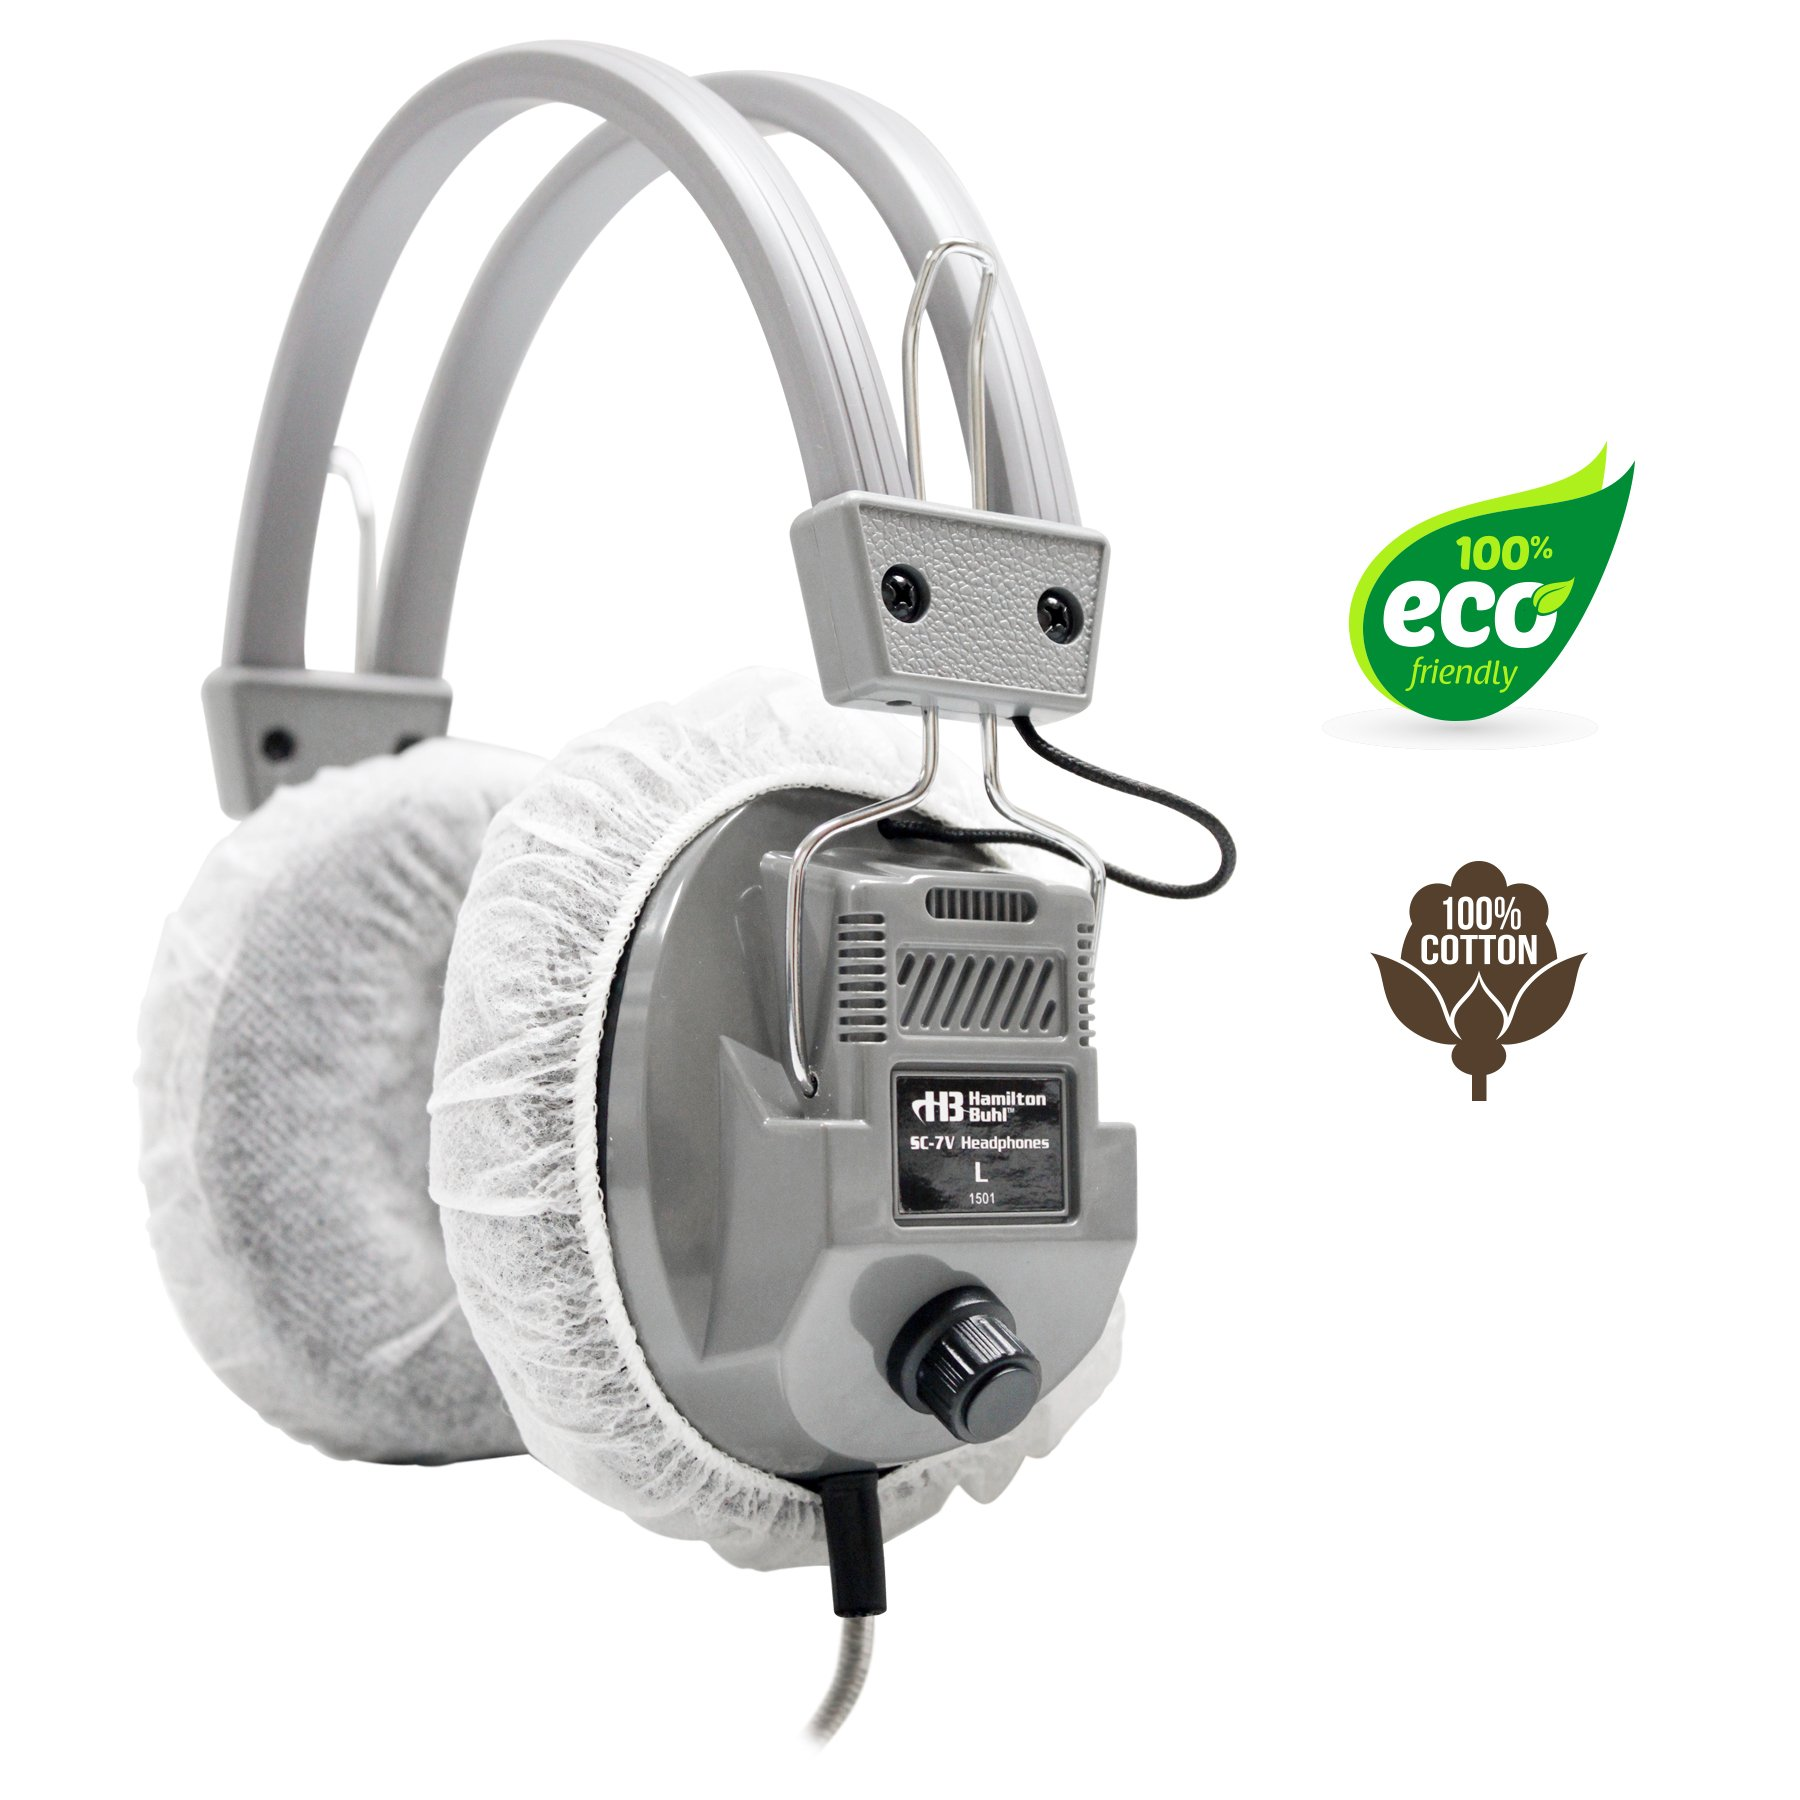 HygenX 100% Cotton Sanitary Ear Cushion Covers 4.5 InchWhite, Master Carton/600 Pairs - For Over-Ear Headphones & Headsets